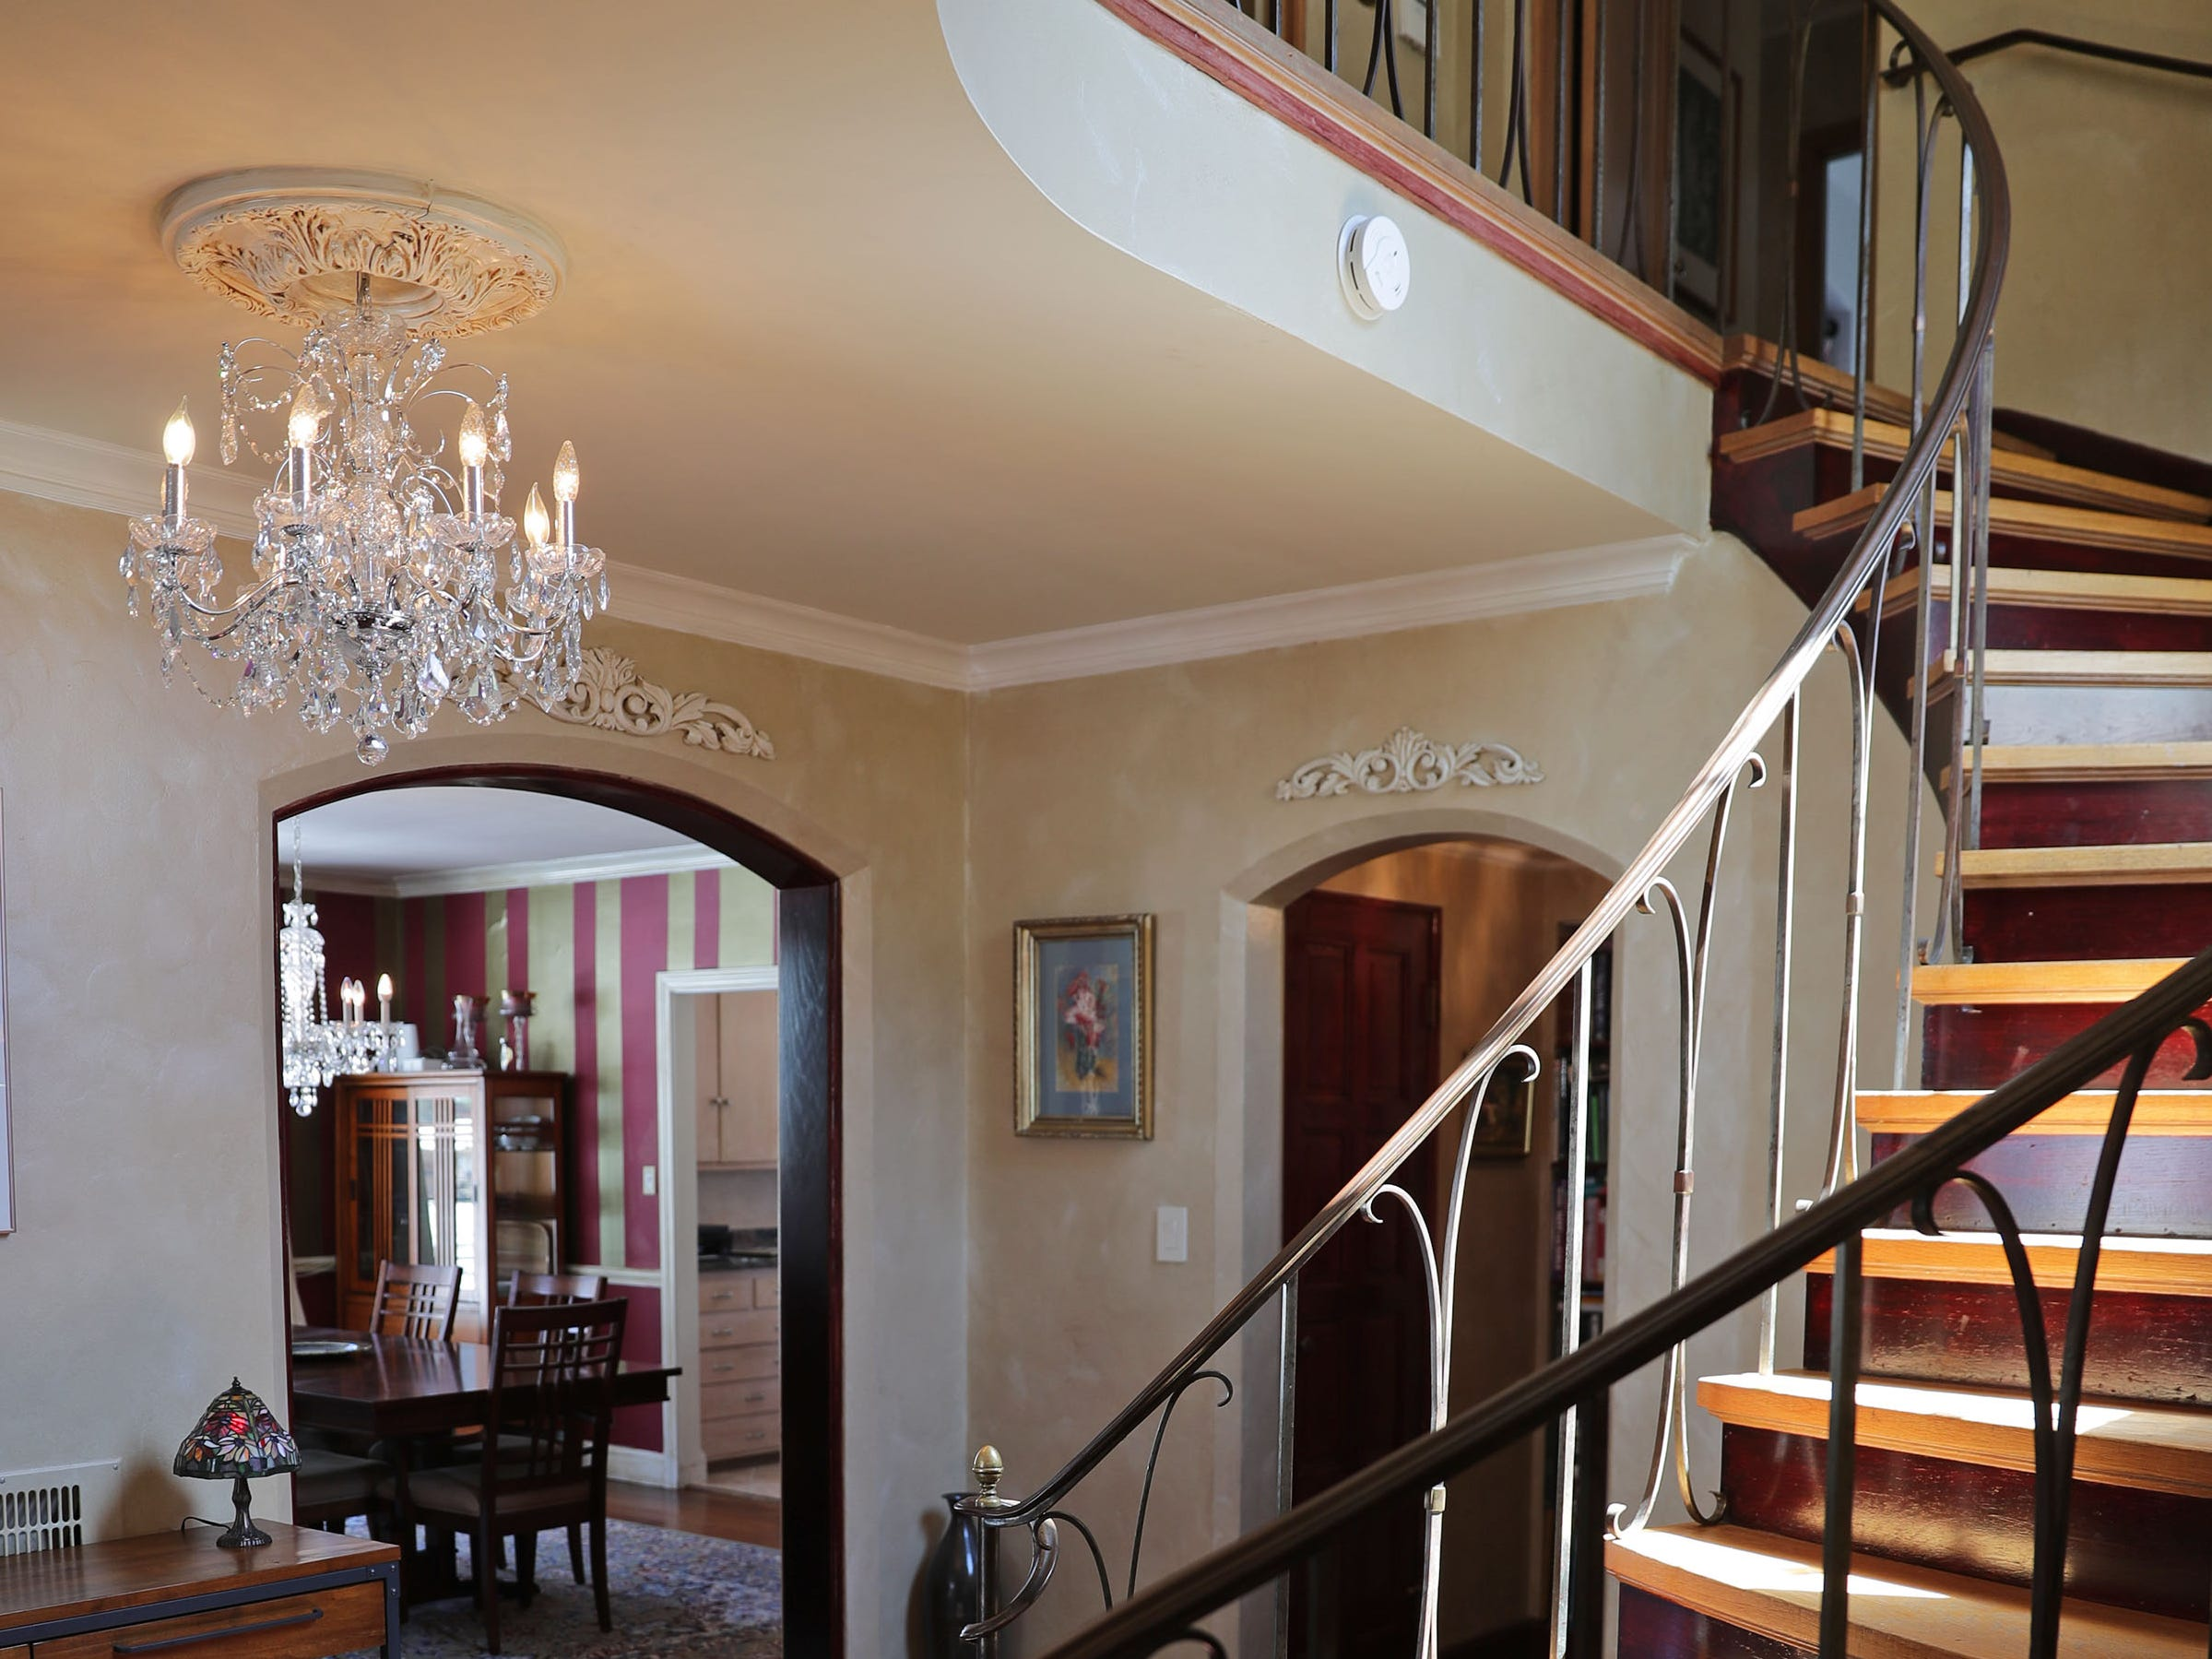 A curved stairway leads from the foyer area to the upper level.